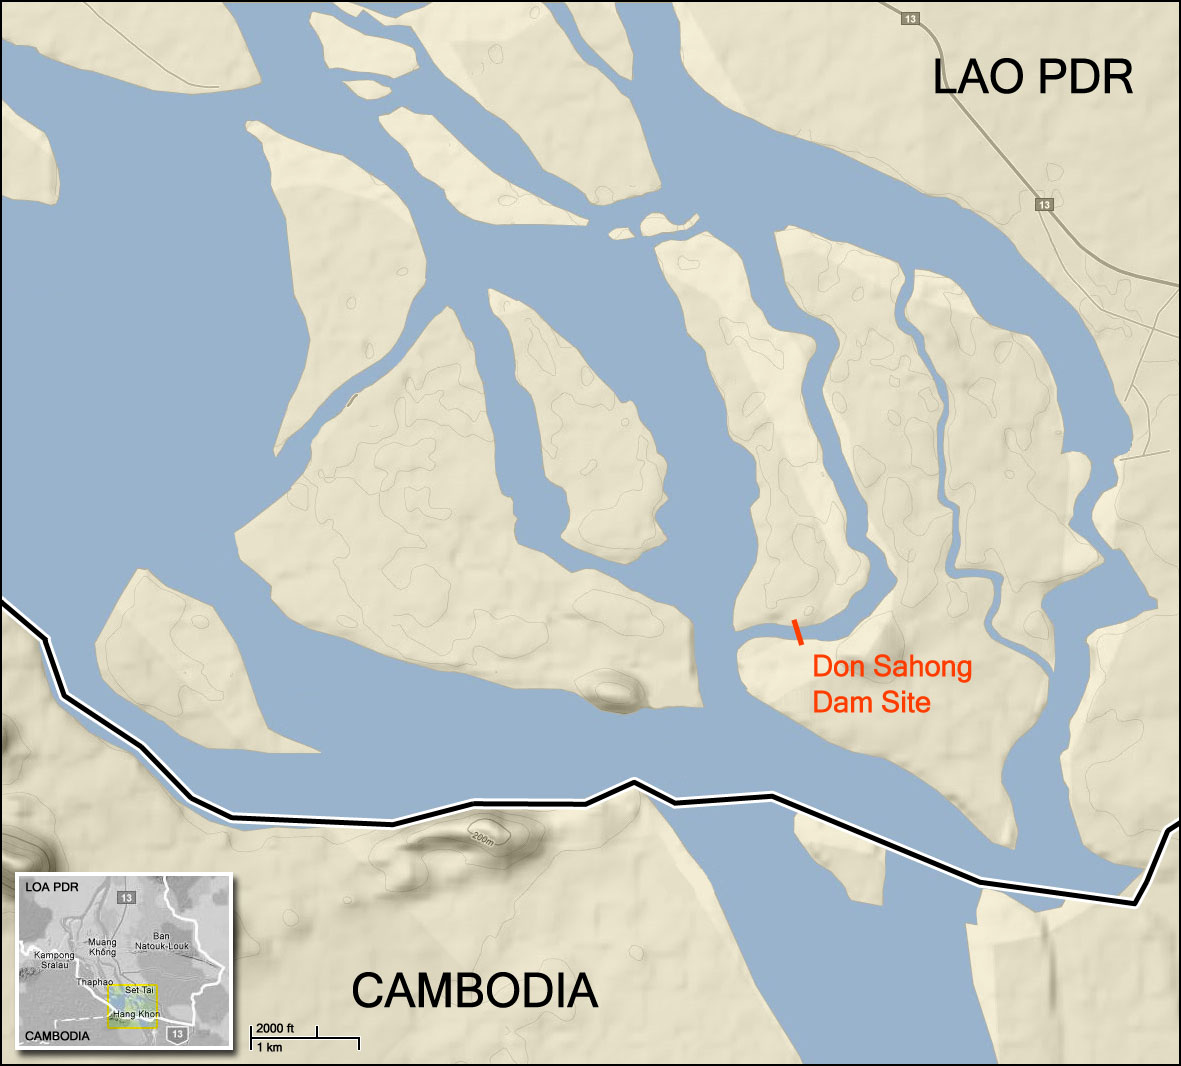 20 CRONIN AND HAMLIN The economic importance of migratory fisheries in Laos, Cambodia, and Vietnam is huge and not replaceable in the short-to-medium term.